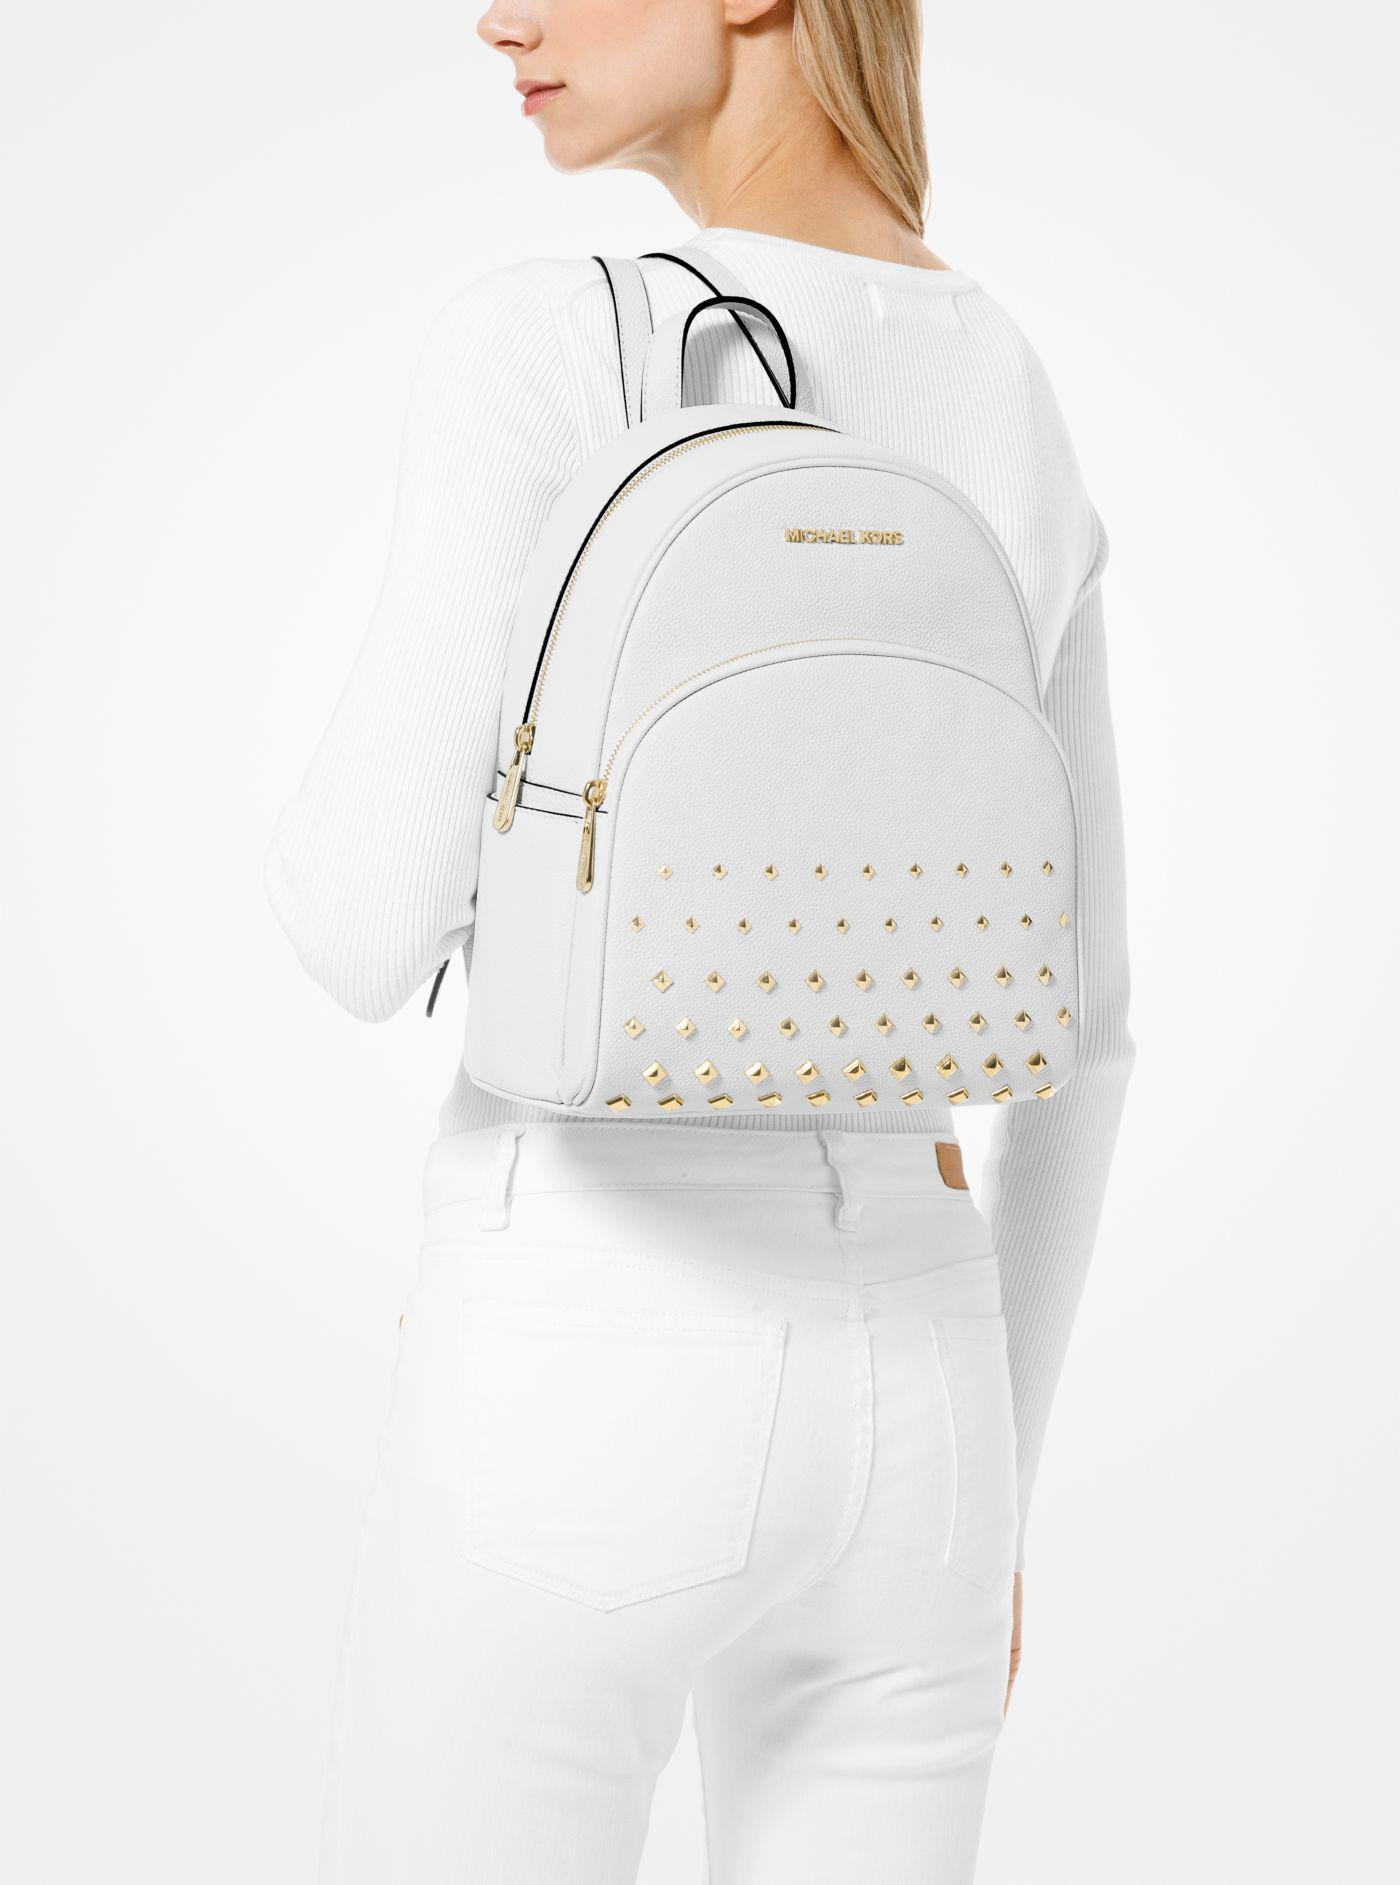 b5957cae0 Michael Kors Abbey Medium Studded Backpack Leather White Bag in ...